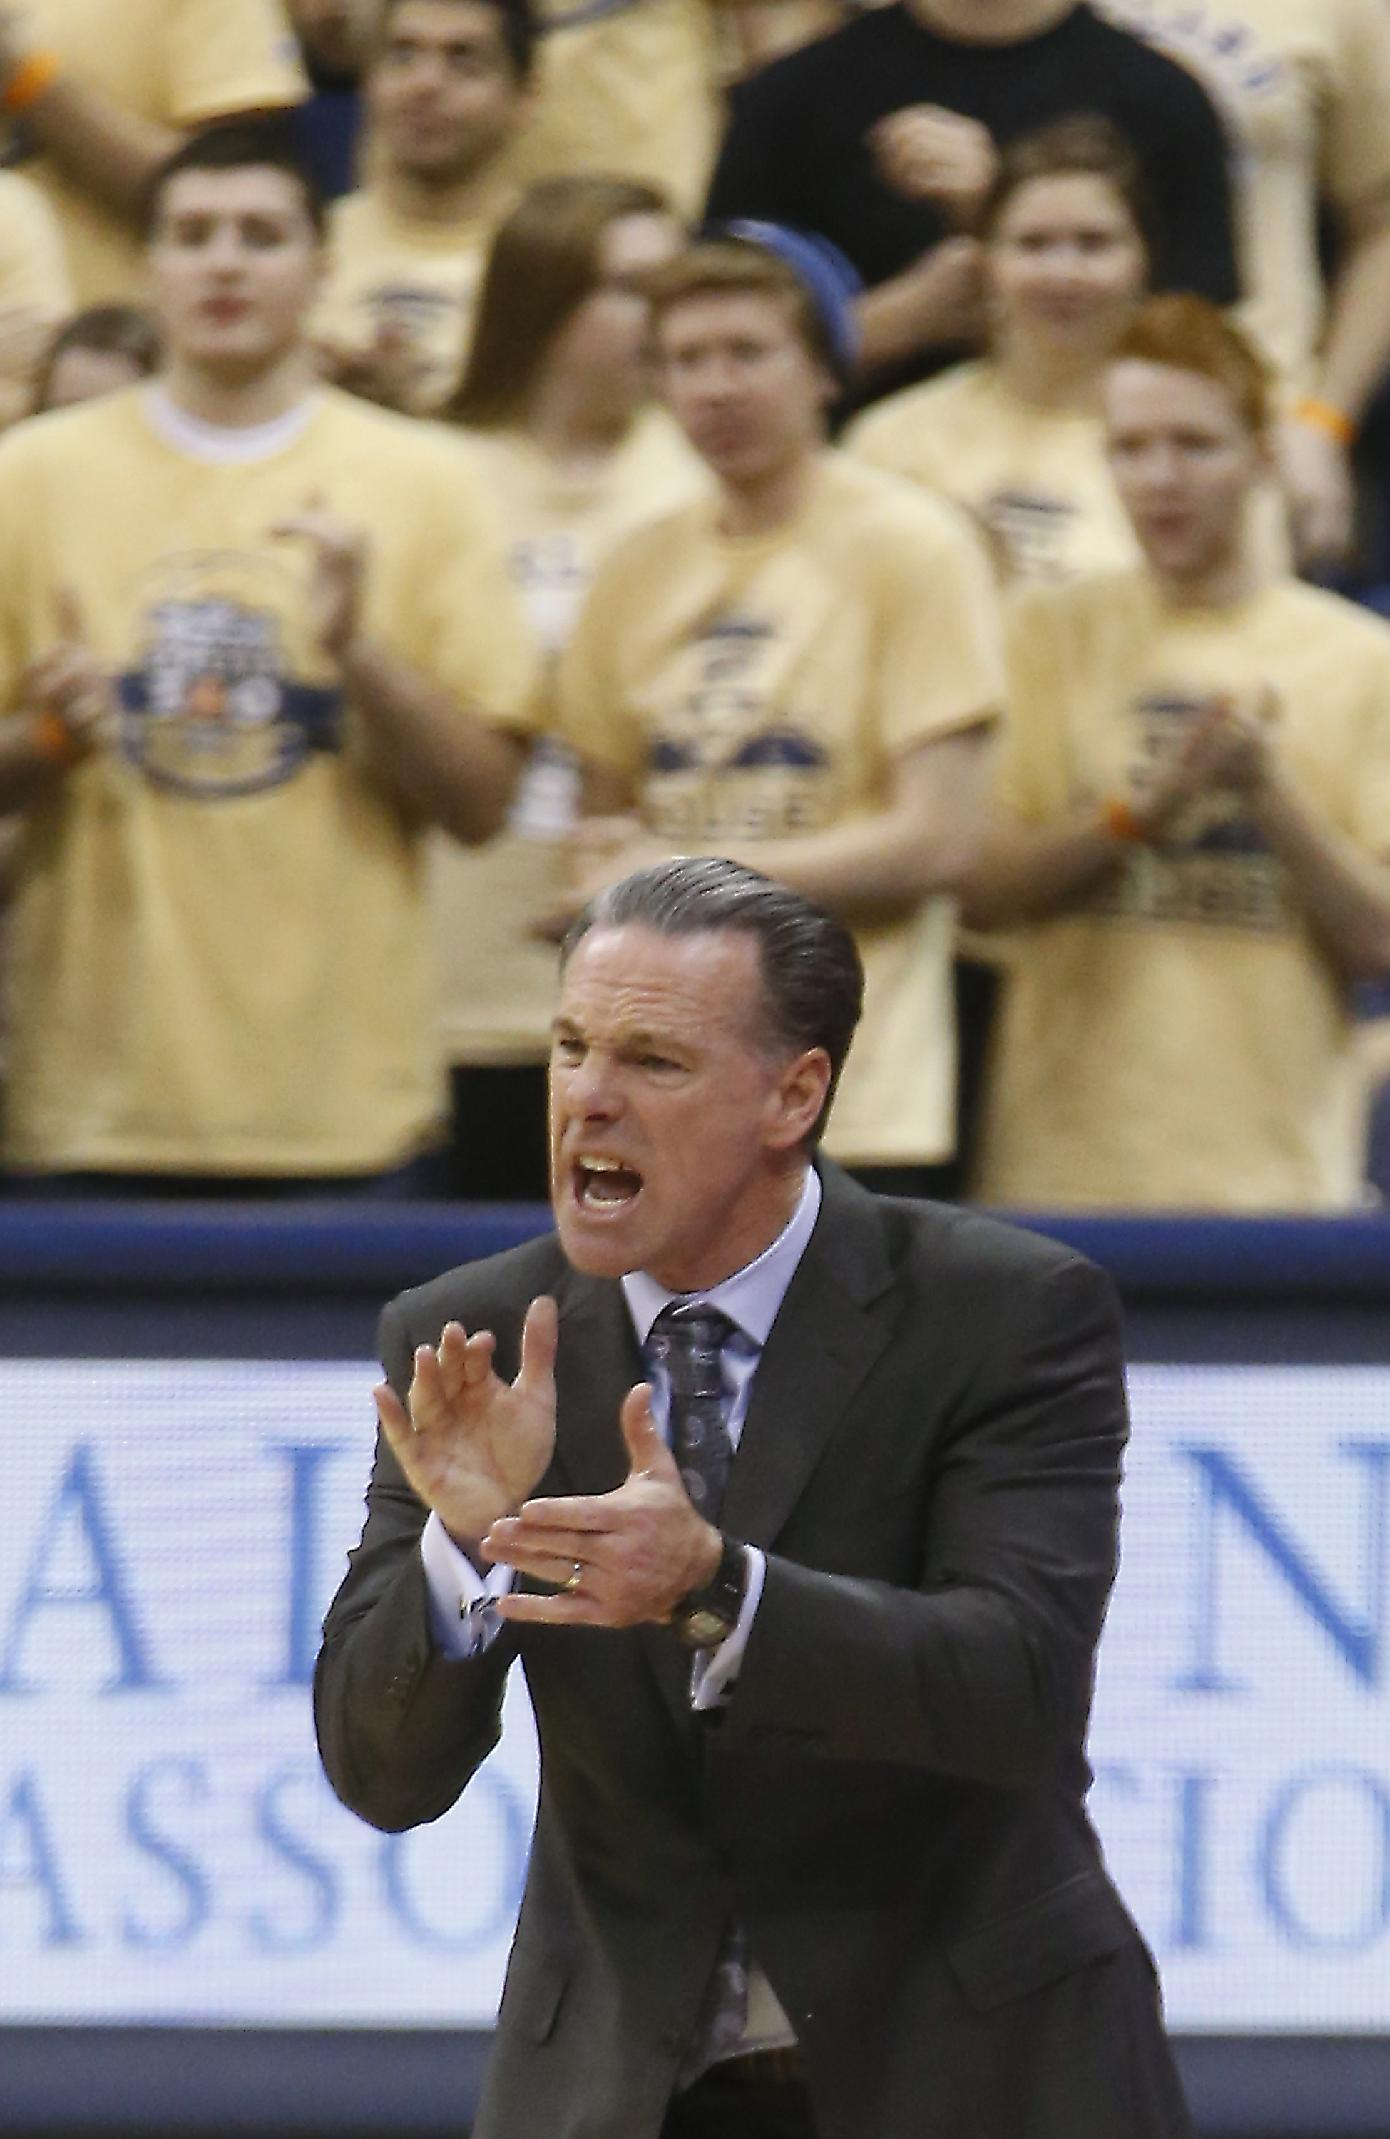 Pittsburgh head coach Jamie Dixon claps as he yells to his team during the first half of an NCAA college basketball game against Virginia Tech on Saturday, Feb. 8, 2014, in Pittsburgh. Pittsburgh won 62-57 in double overtime